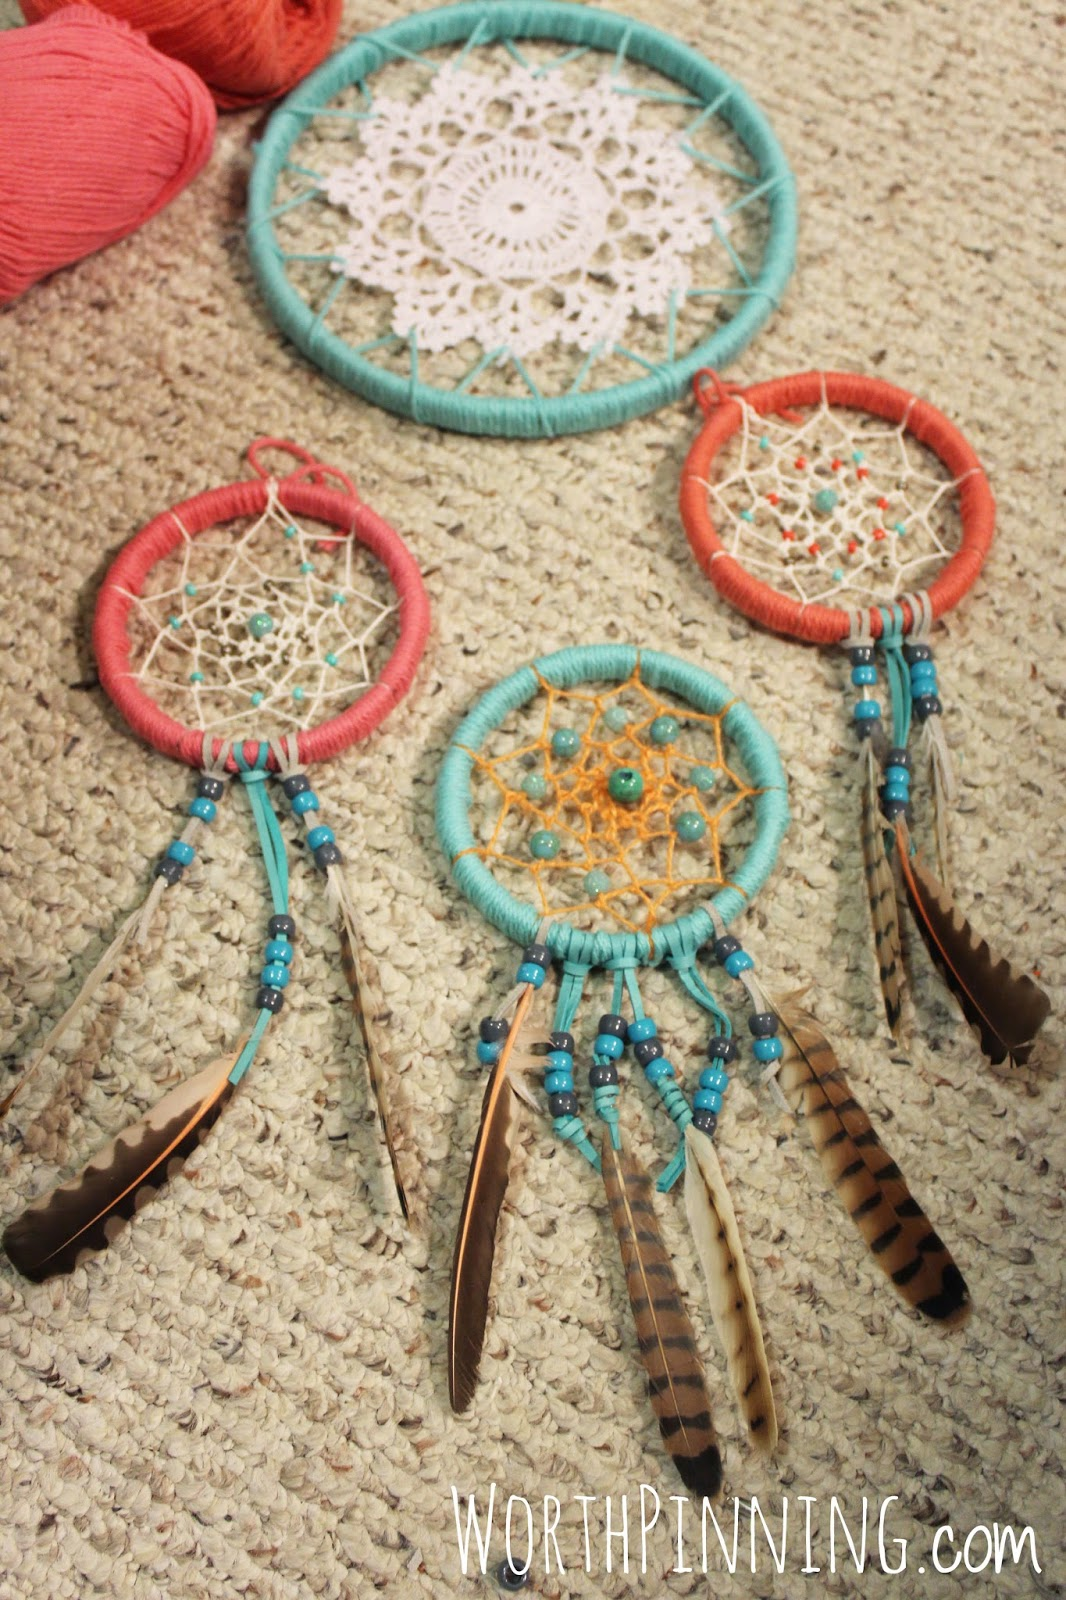 How Are Dream Catchers Made Worth Pinning How to Make a Dreamcatcher 37